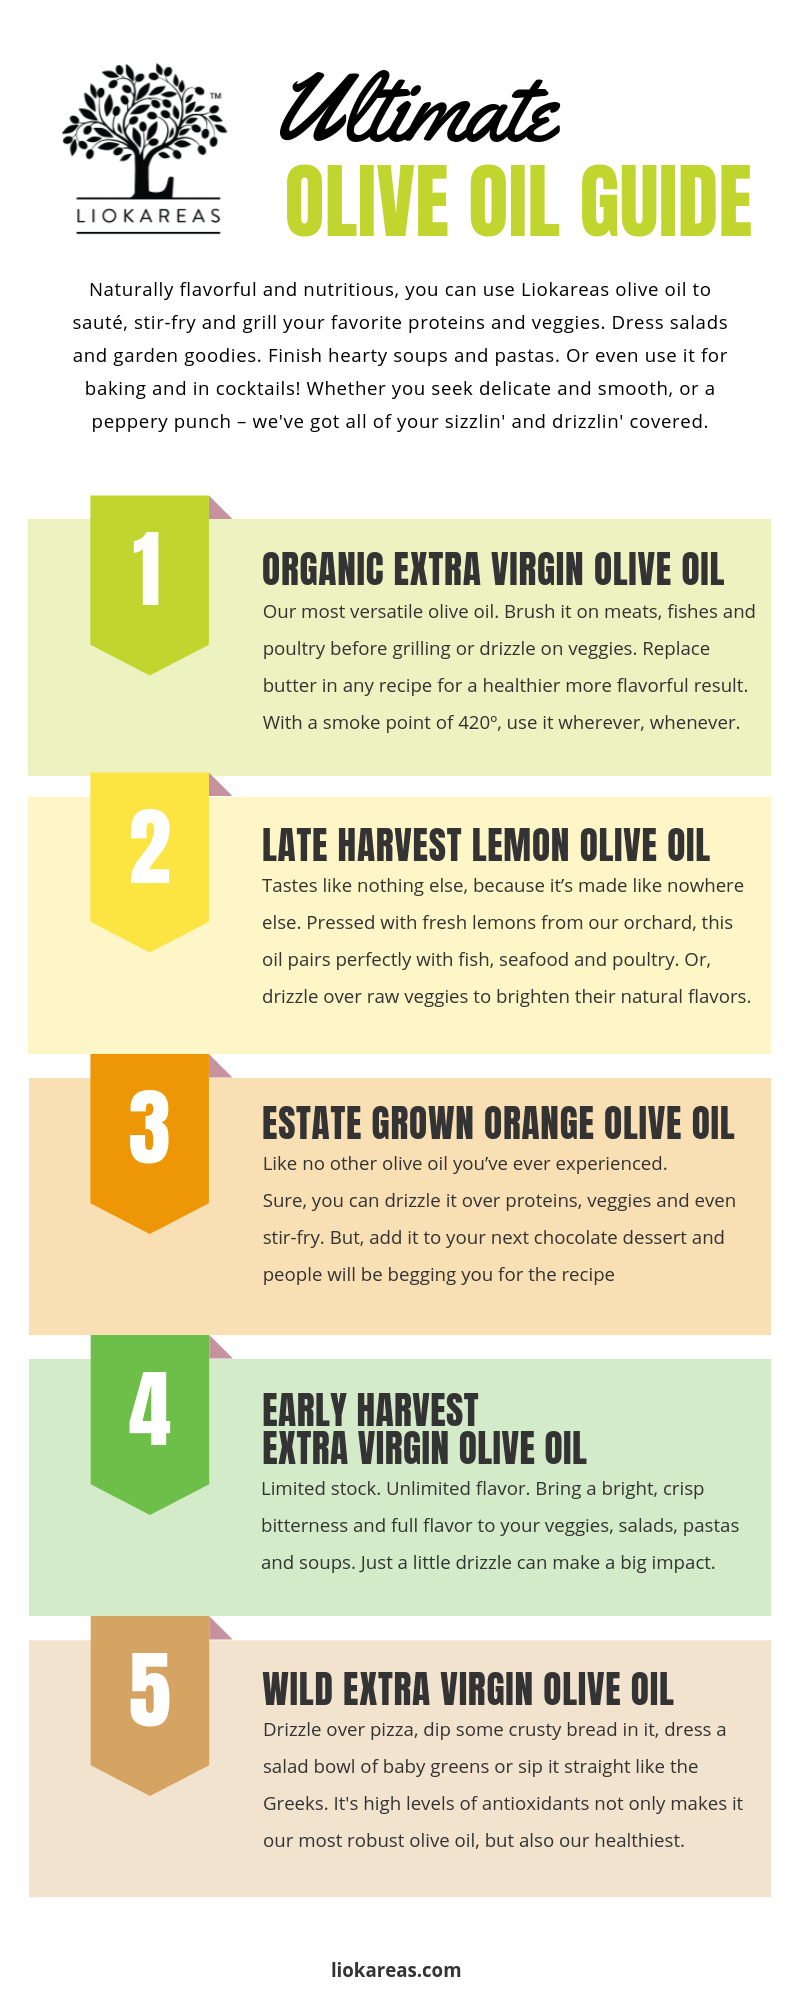 Liokareas Ultimate Olive Oil Guide